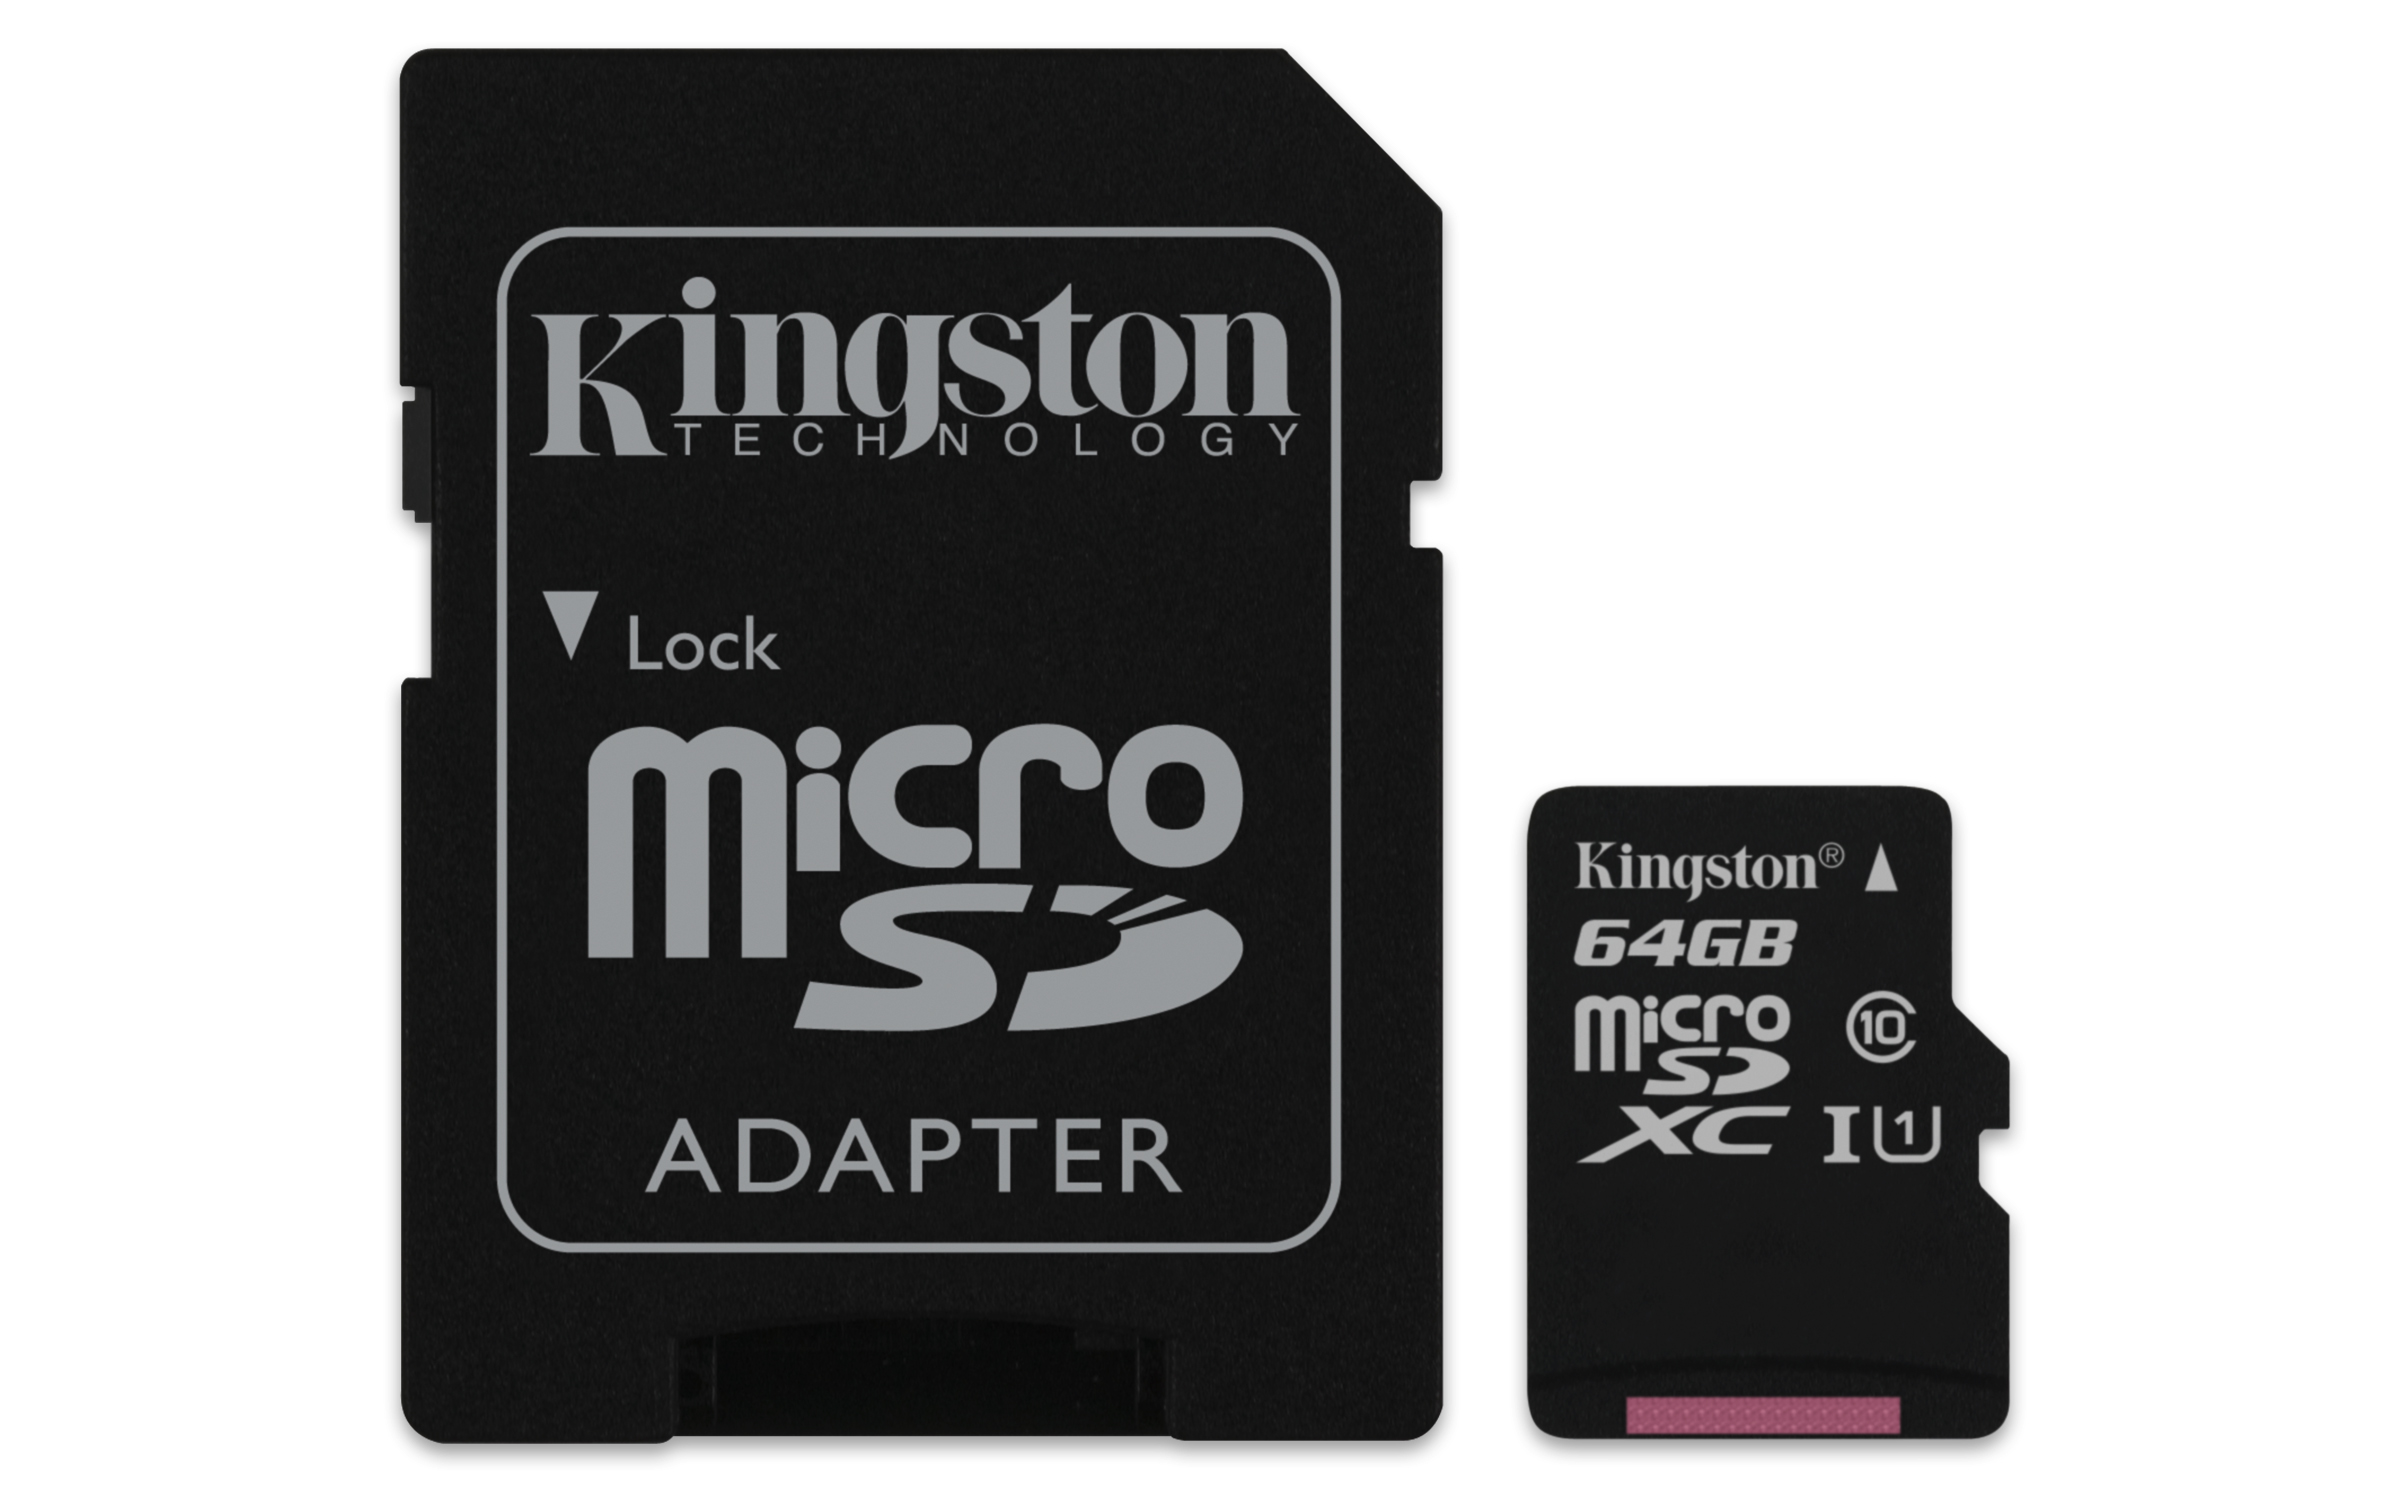 KINGSTON 64GB 64G microSDXC【45MB/s】 microSD micro TF SDXC SD U1 C10 Class10 金士頓 手機記憶卡